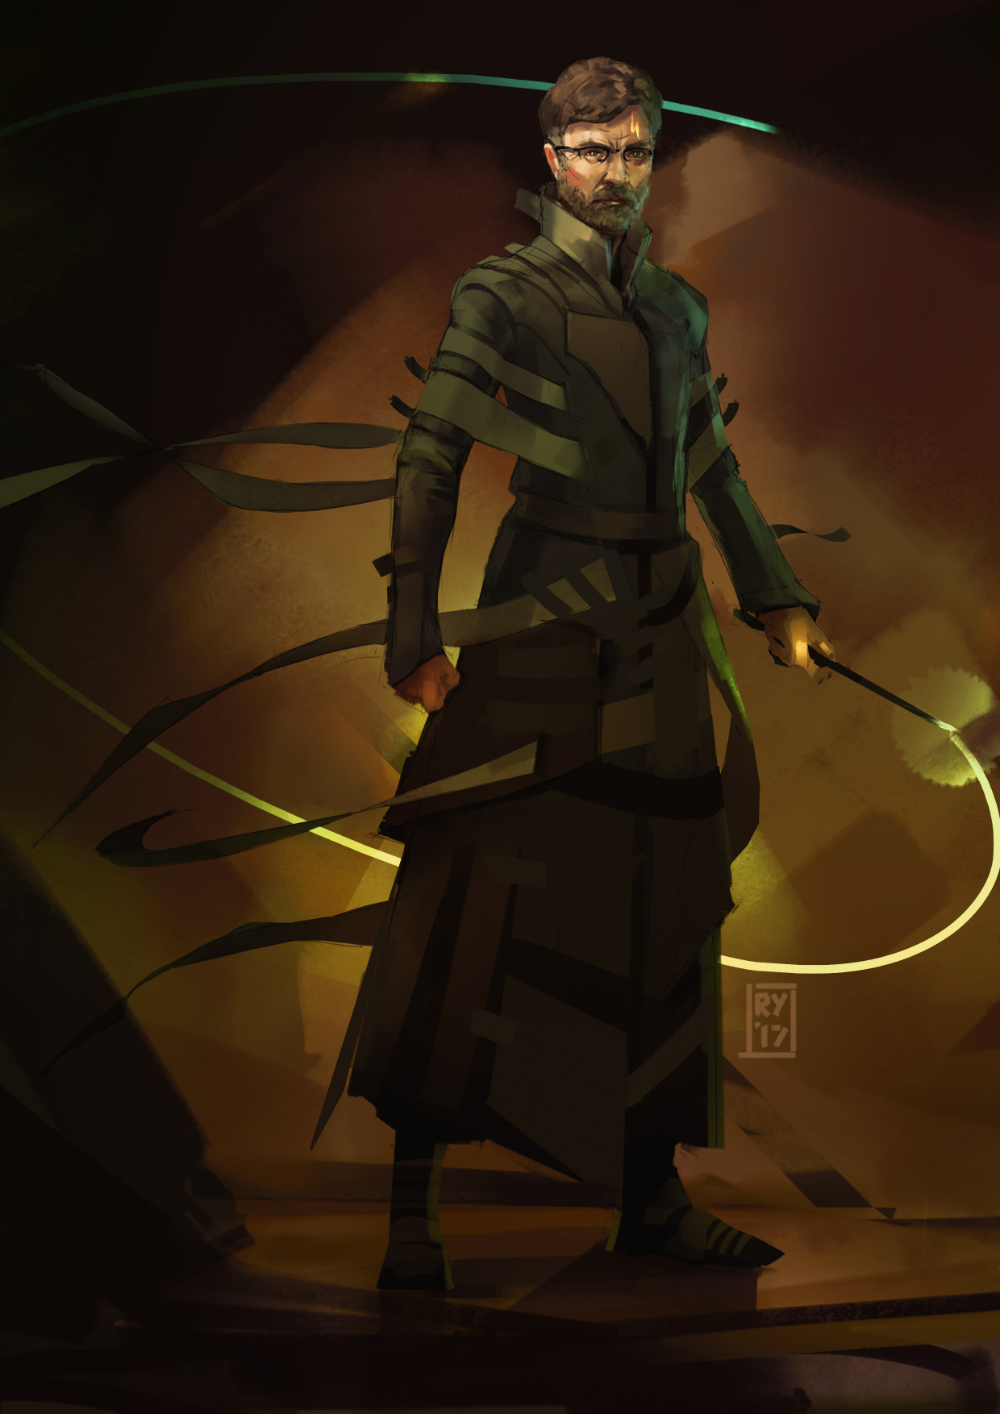 Character Design Challenge Harry Potter By Ryanm Art On Deviantart Harry Potter Rpg Harry Potter Games Harry Potter